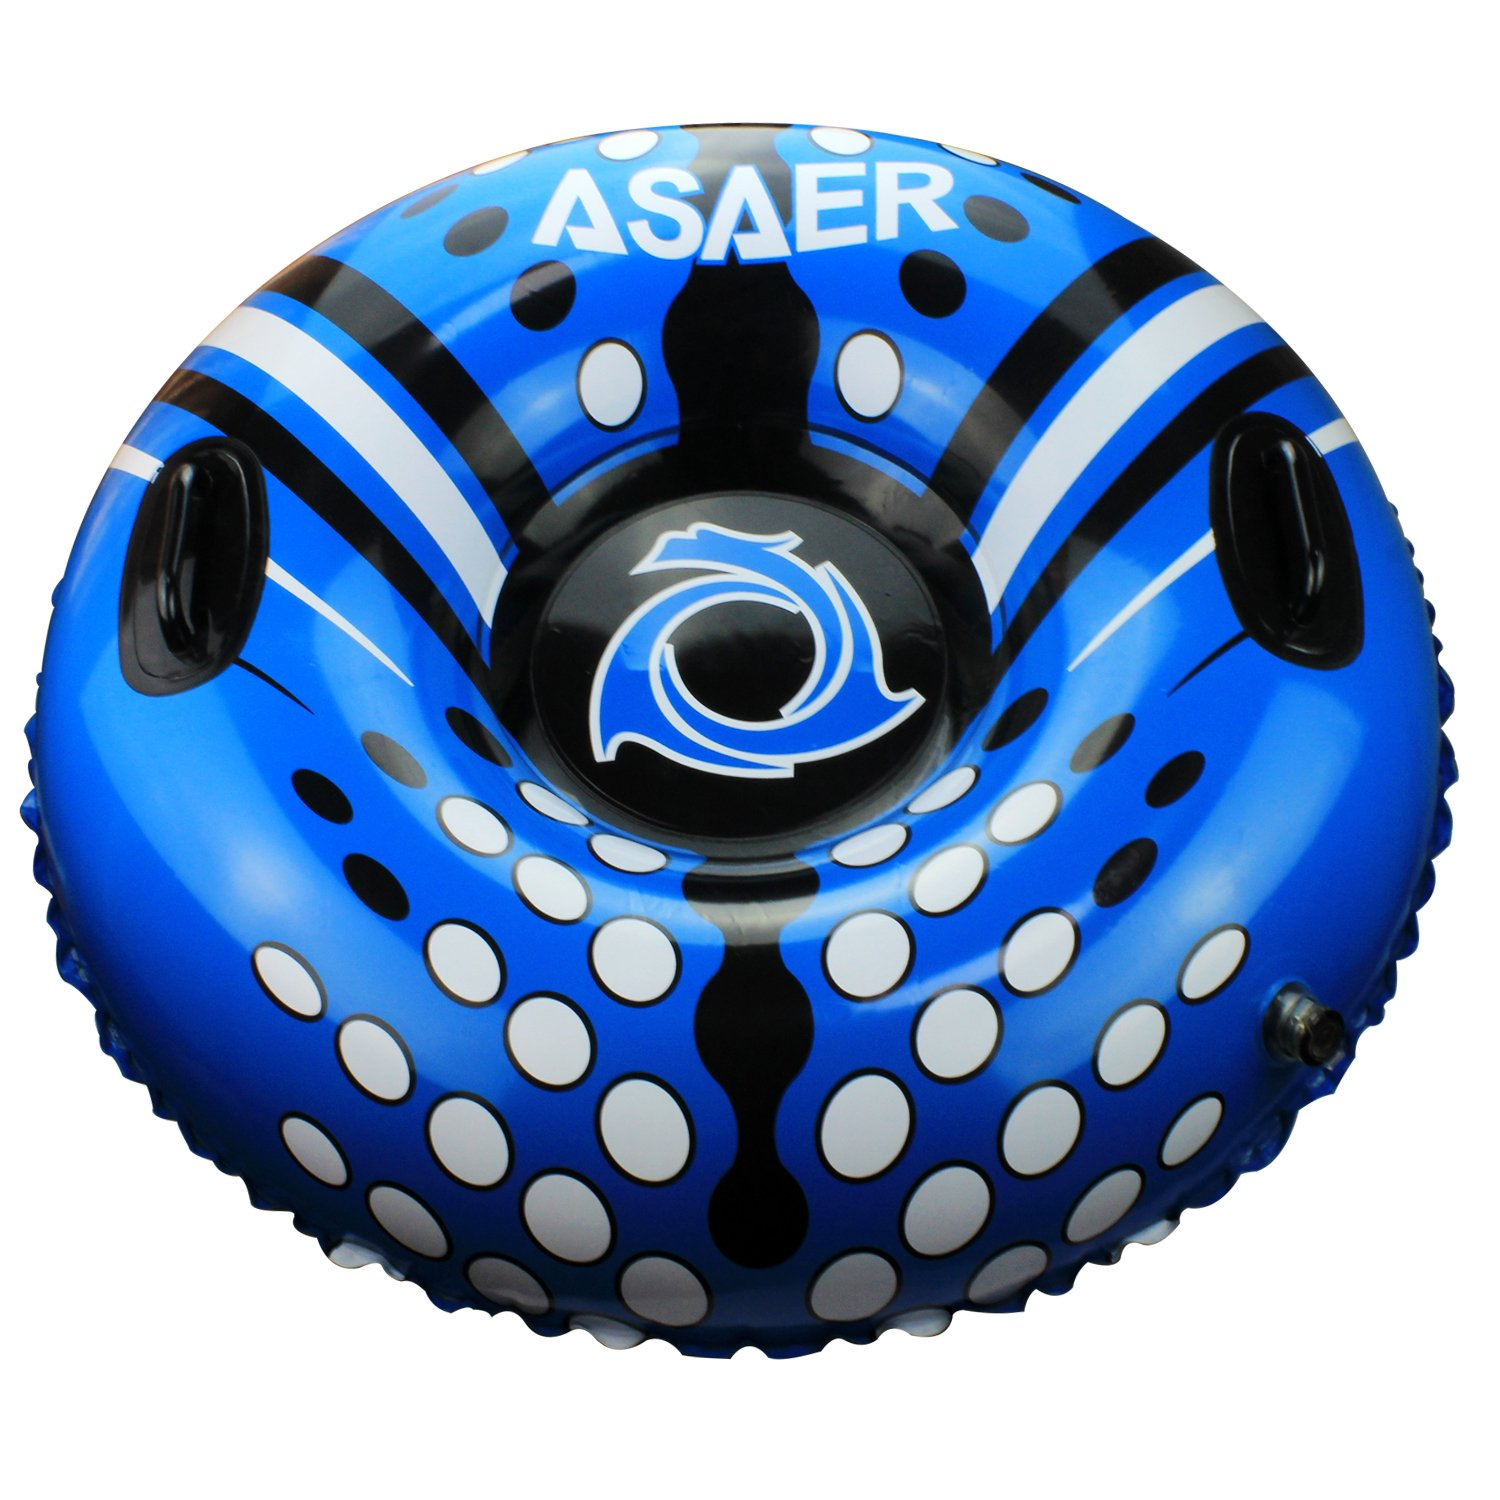 ASAER Snow Tube - Air Tube 39 Inch Inflatable Snow/Sled with Rapid Valves - Aqua Leisure Winter Inflatable Round Snow Tube with vinyl tube repair kit - With thickening bottom of 50mm!!(Blue) by ASAER